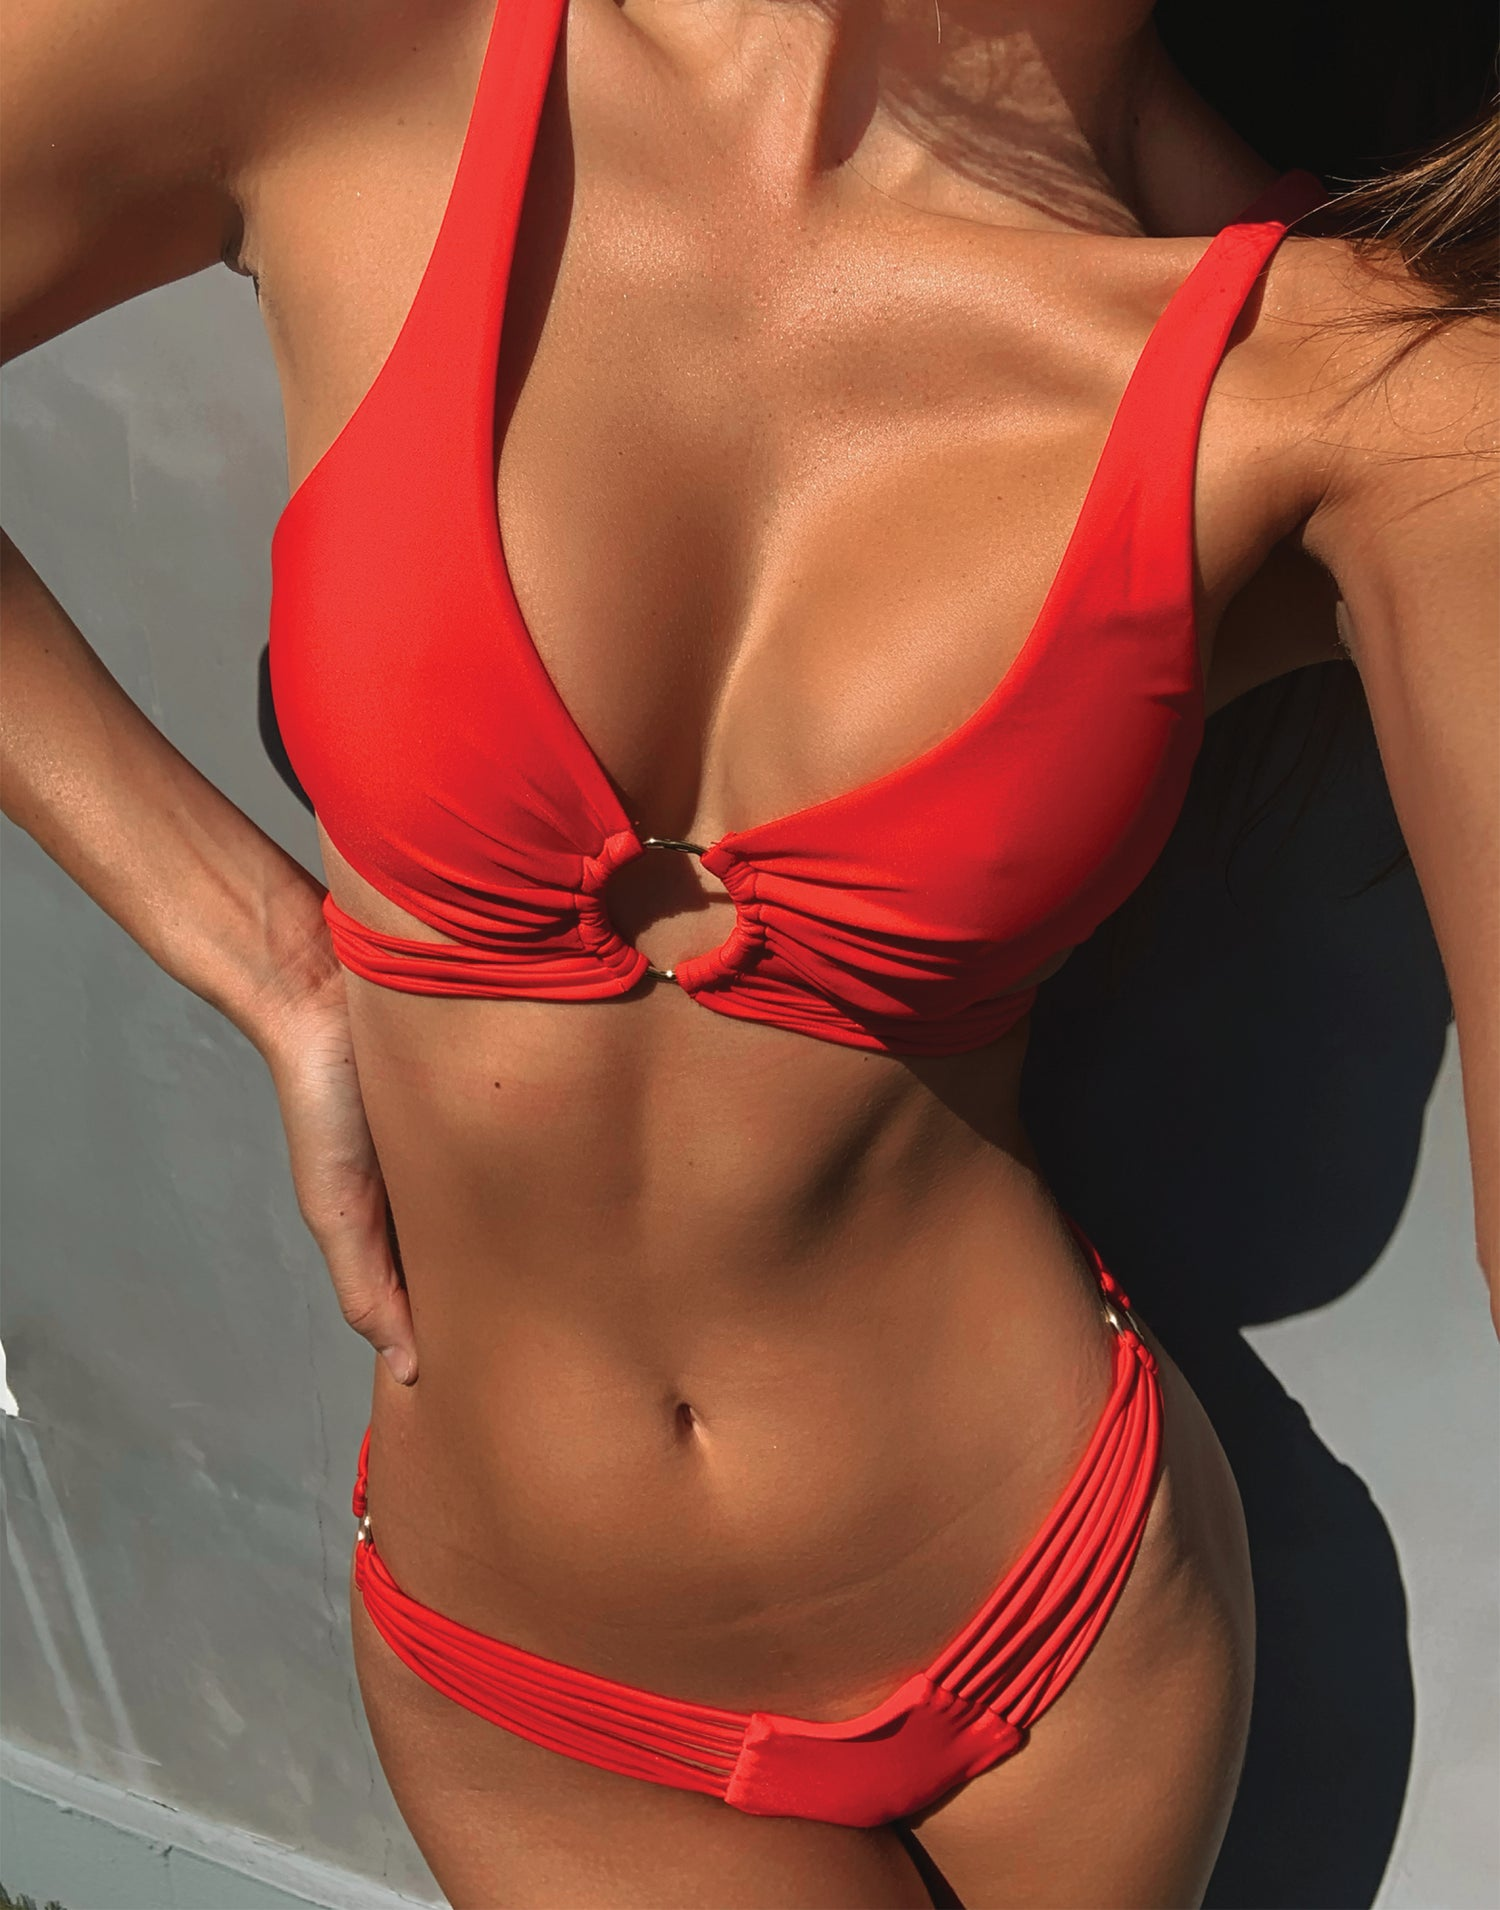 Indy Bralette Bikini Top in Red with Strappy Details - Detail View